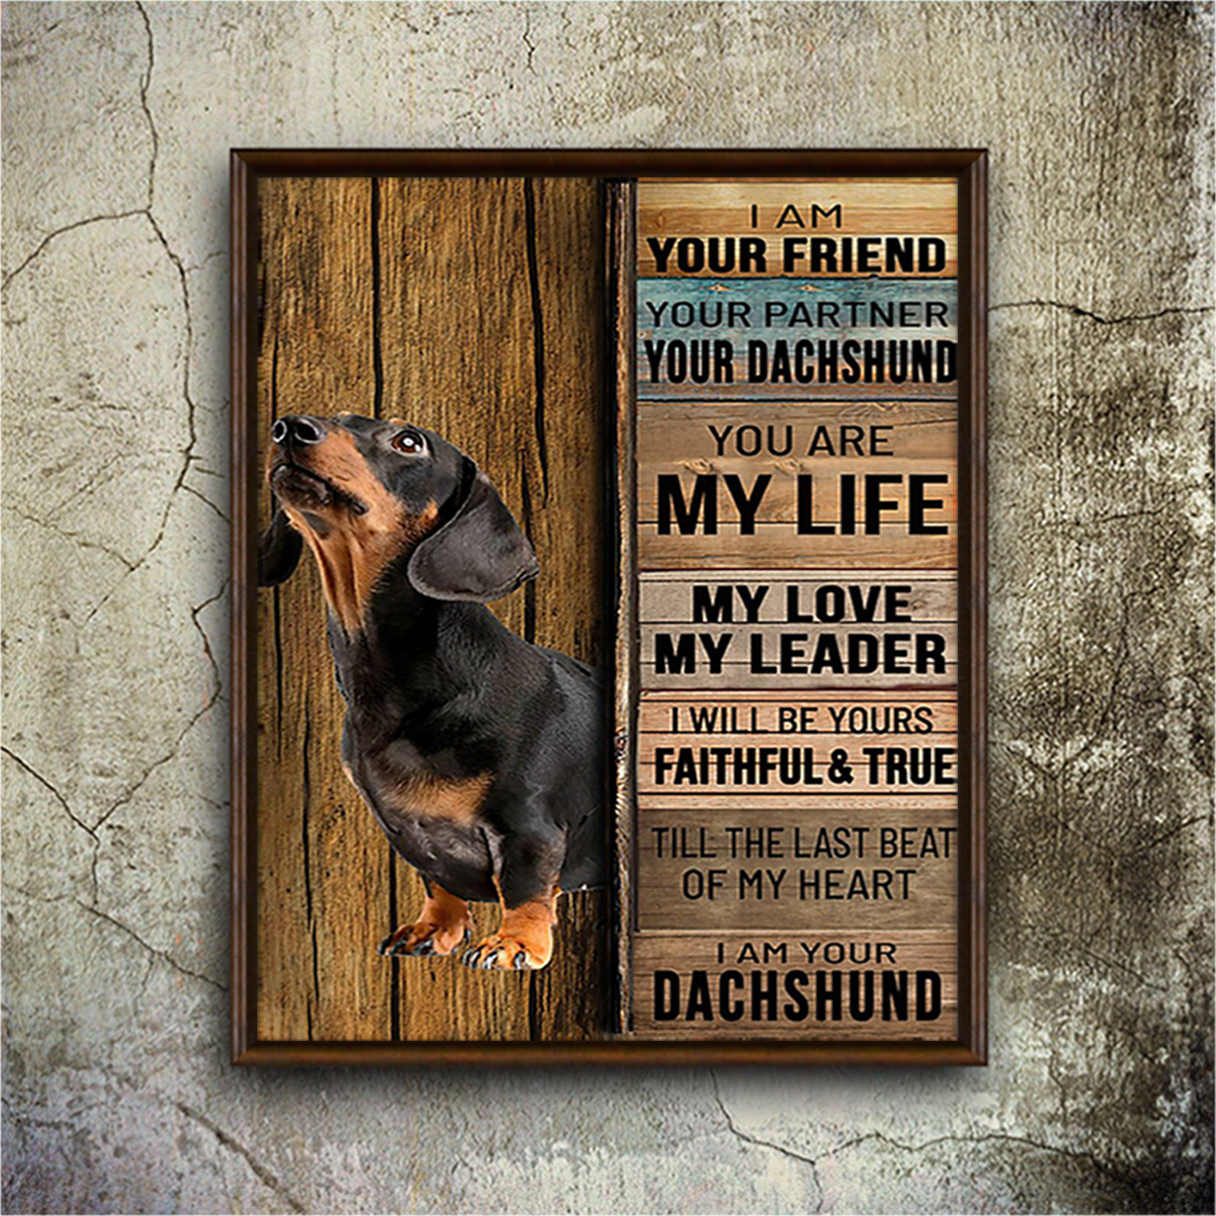 Dachshund I am your friend poster A3